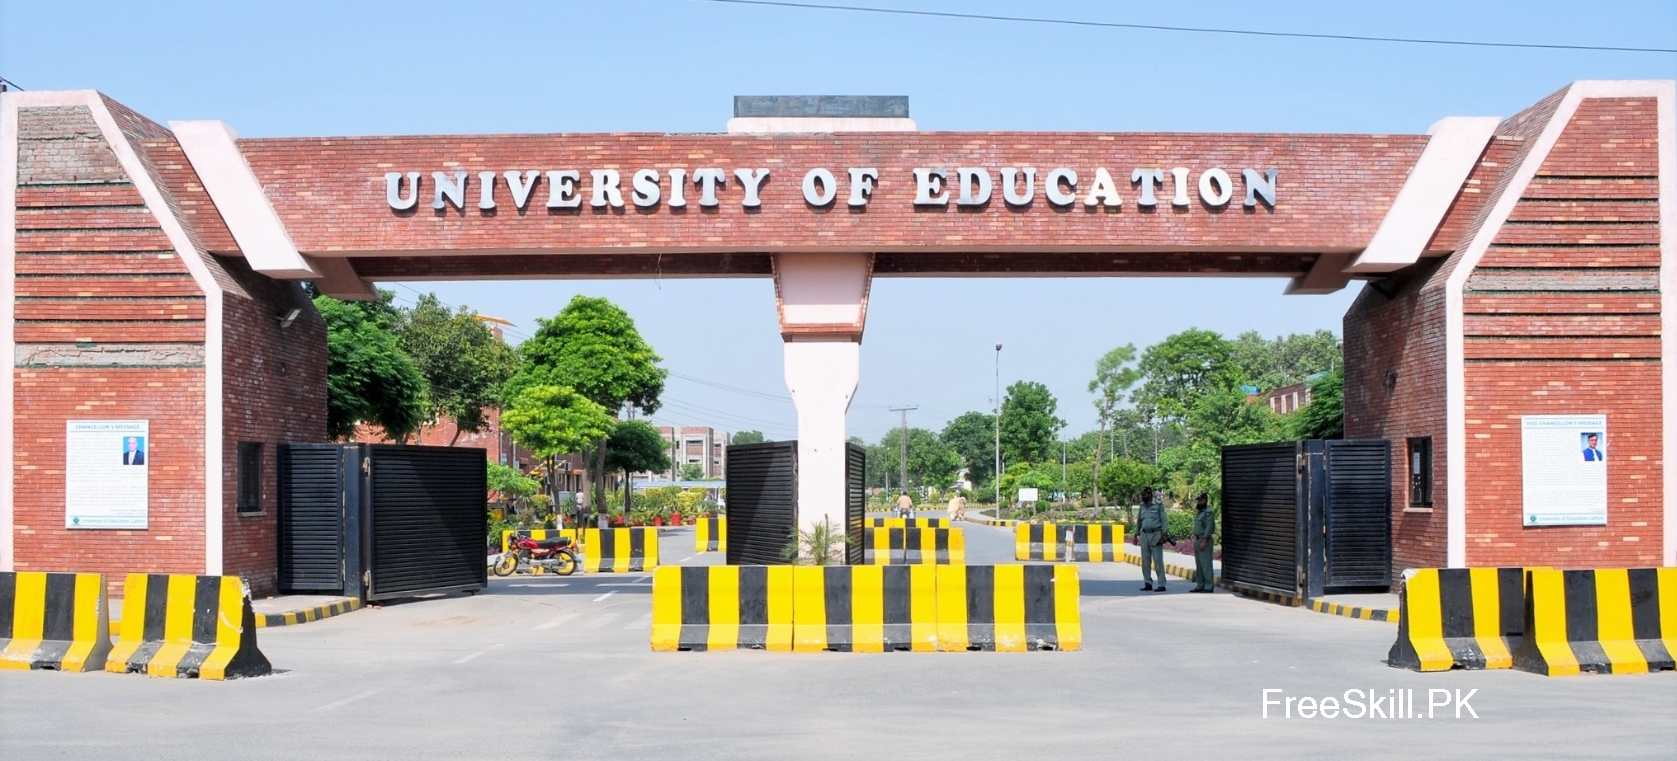 The University of Education In Pakistan